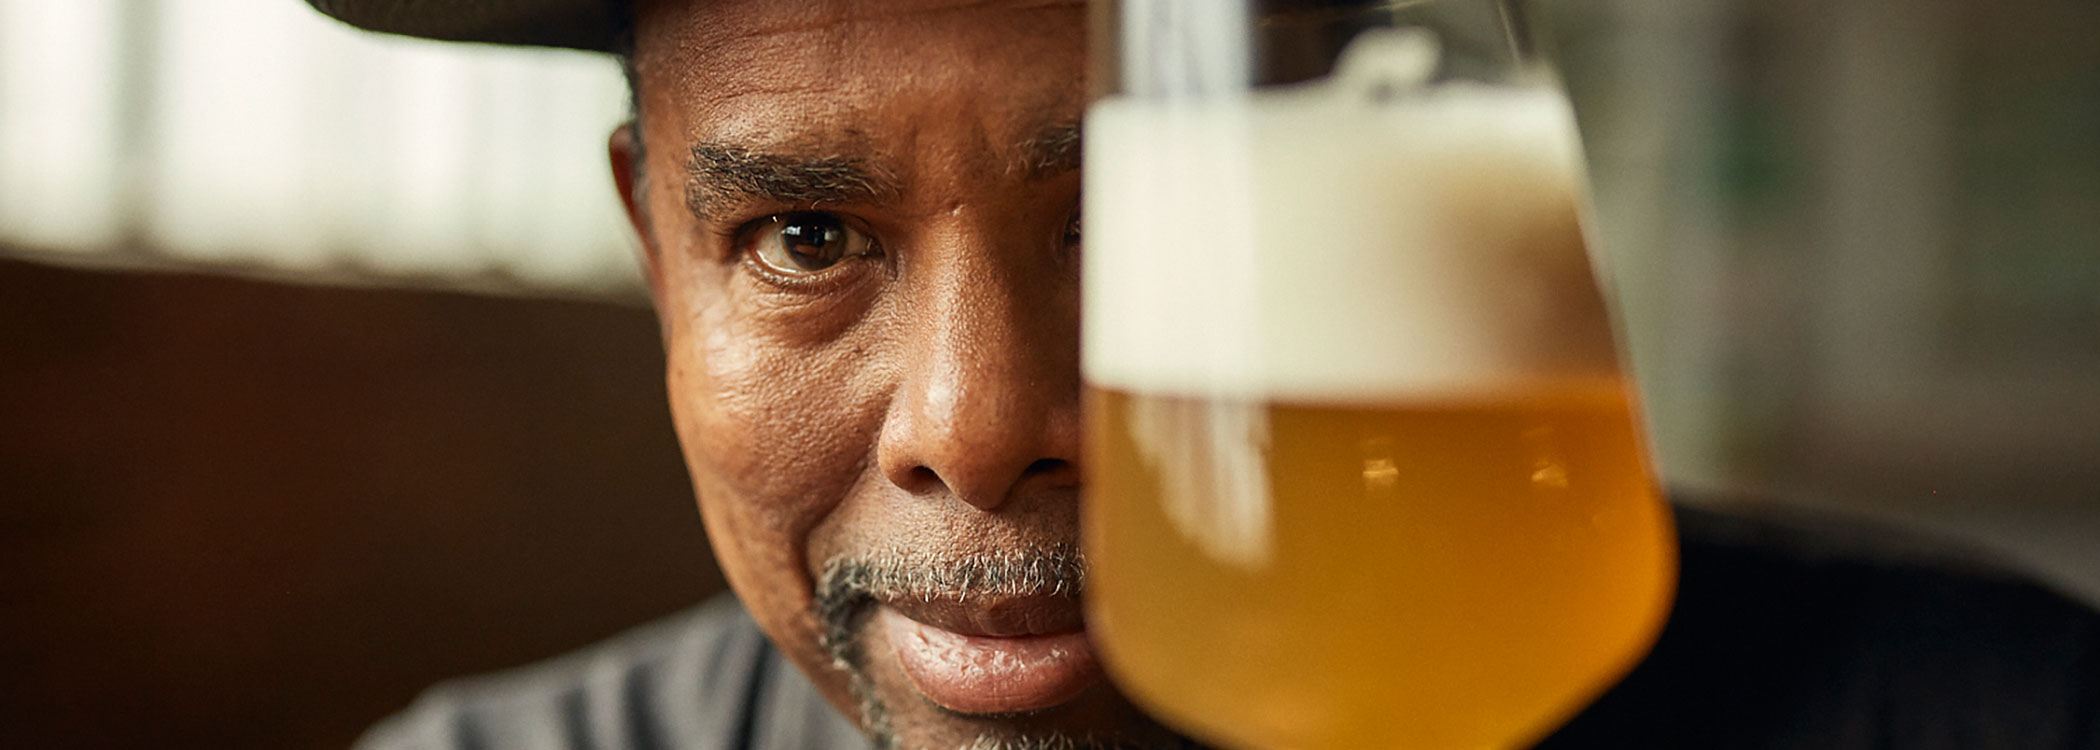 Brooklyn Brewery's Garrett Oliver On Access, Anti-Racism, And Showing Up